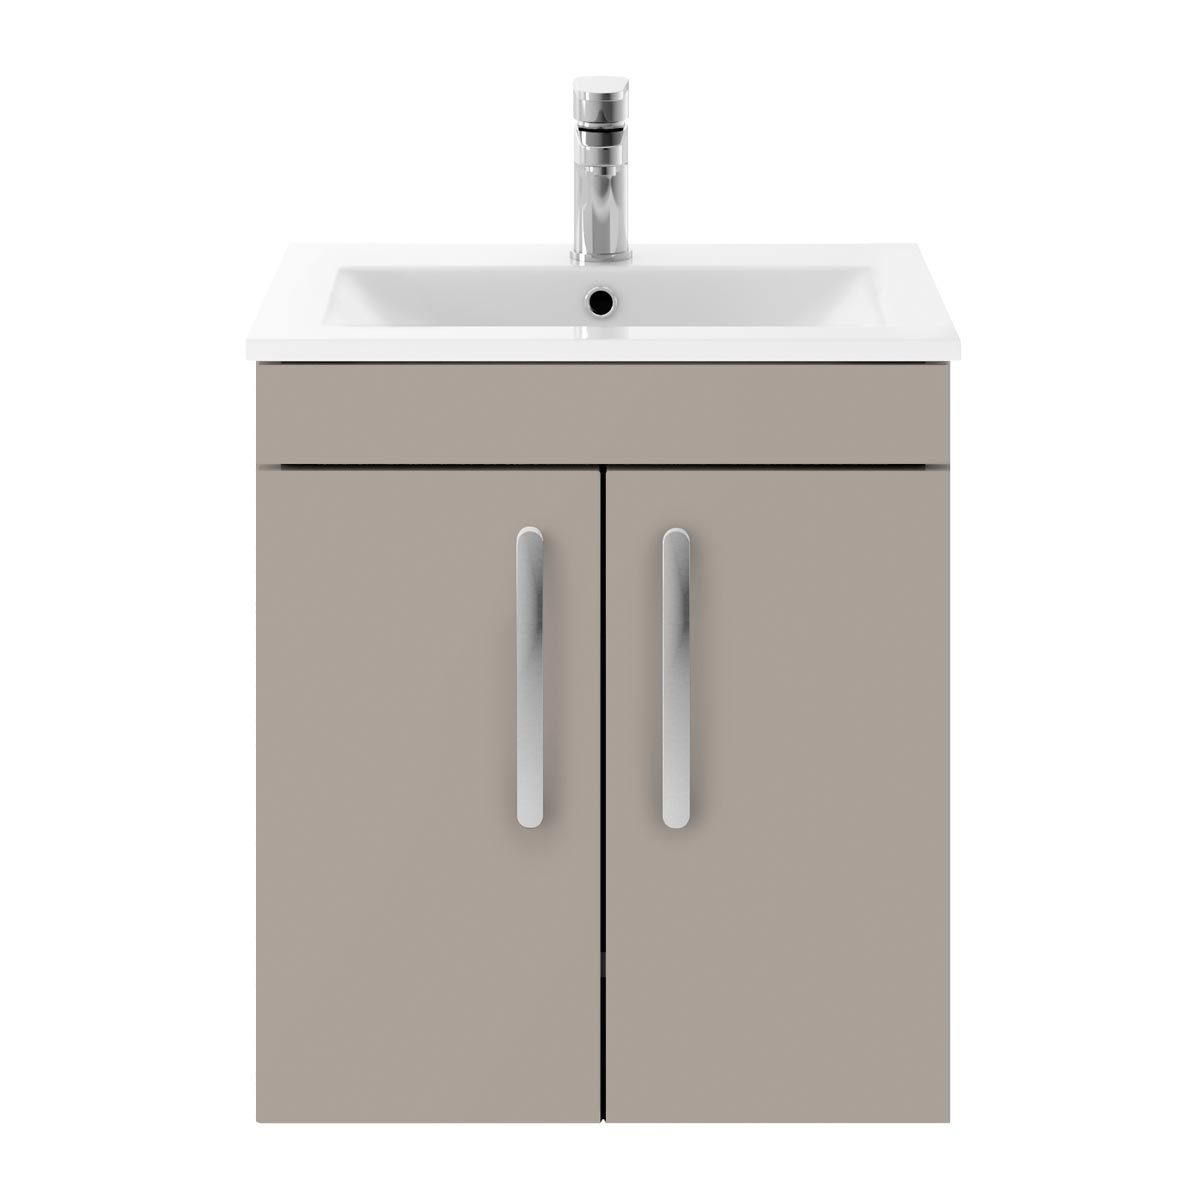 Nuie Athena Stone Grey 2 Door Wall Hung Vanity Unit with 18mm Profile Basin 500mm